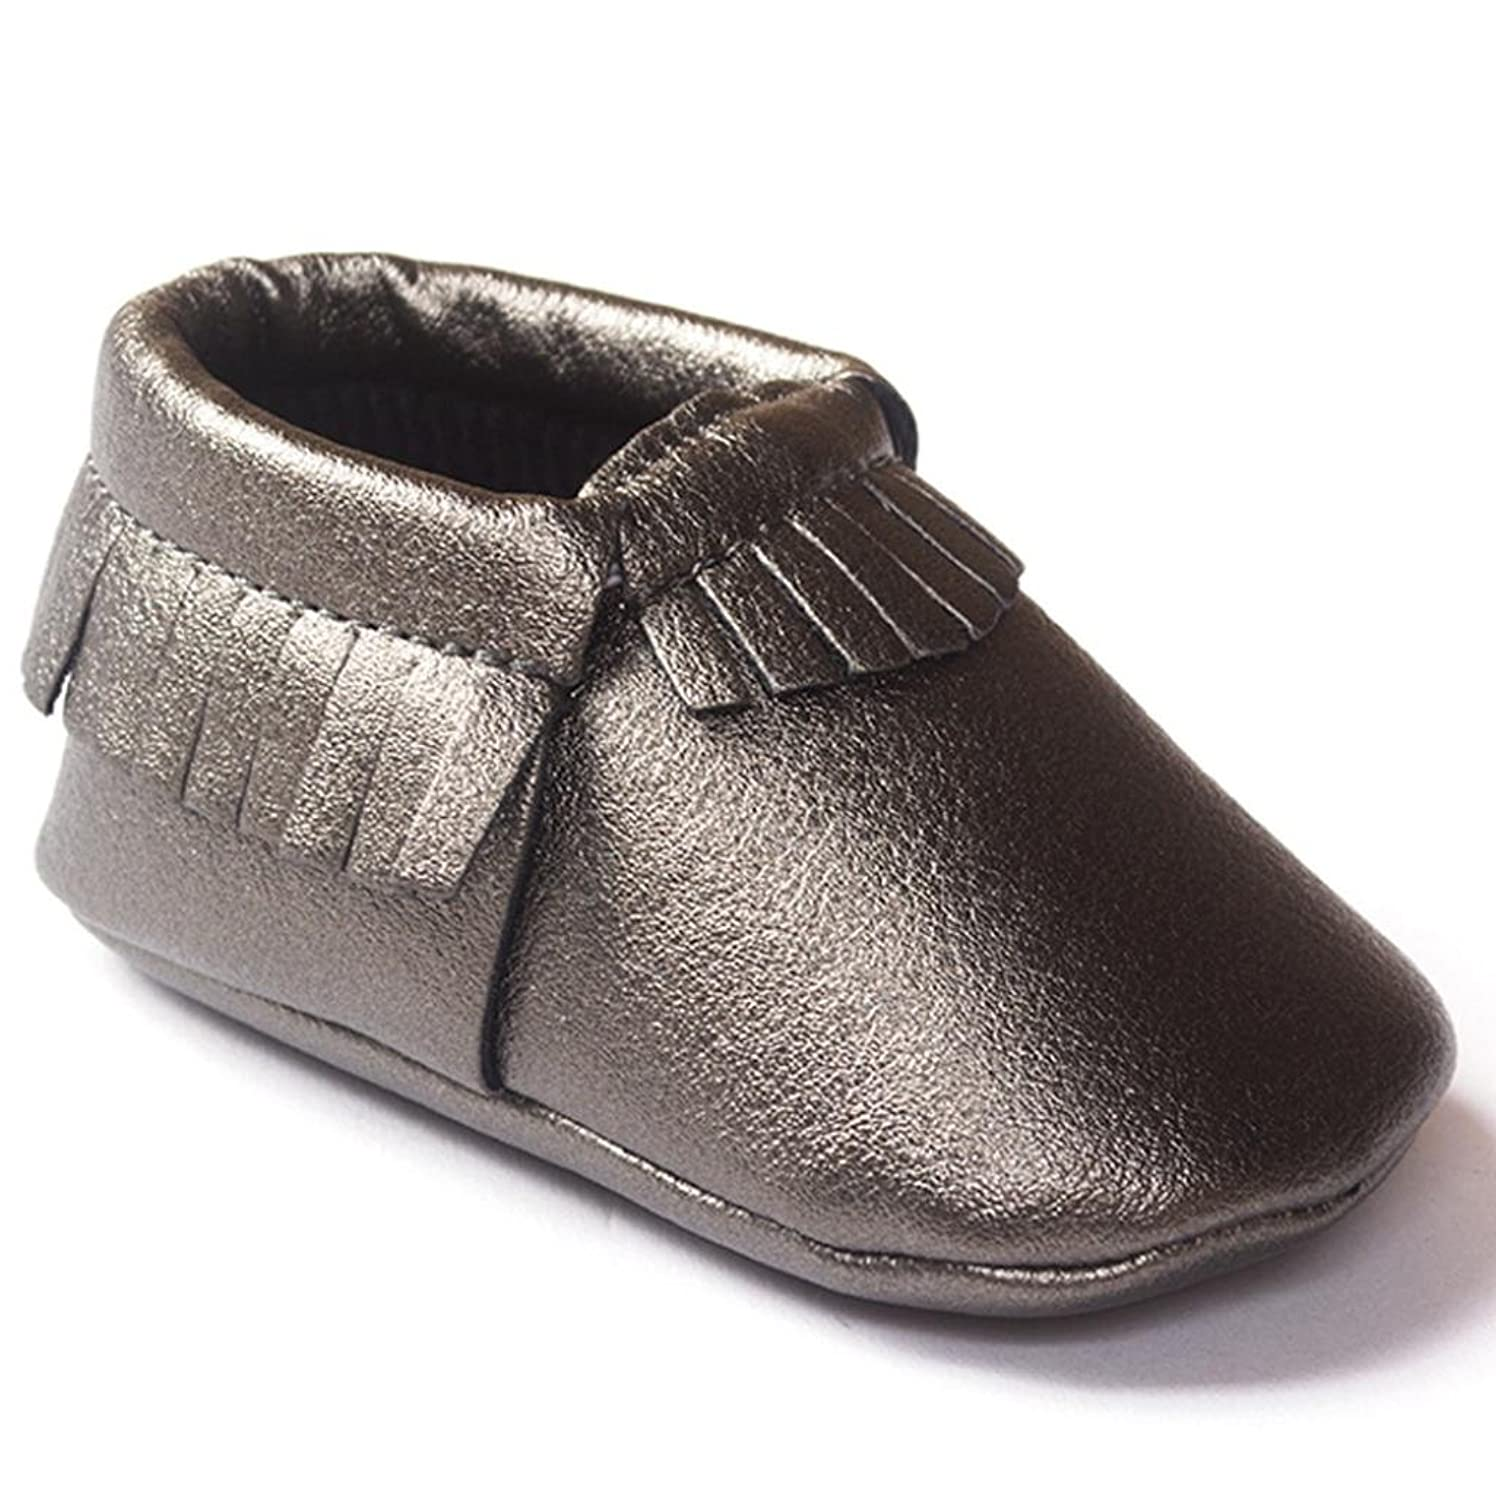 Voberry Toddler Baby Girls Boy's Sneaker Tassels Moccasins Anti-slip Soft Sole Shoes